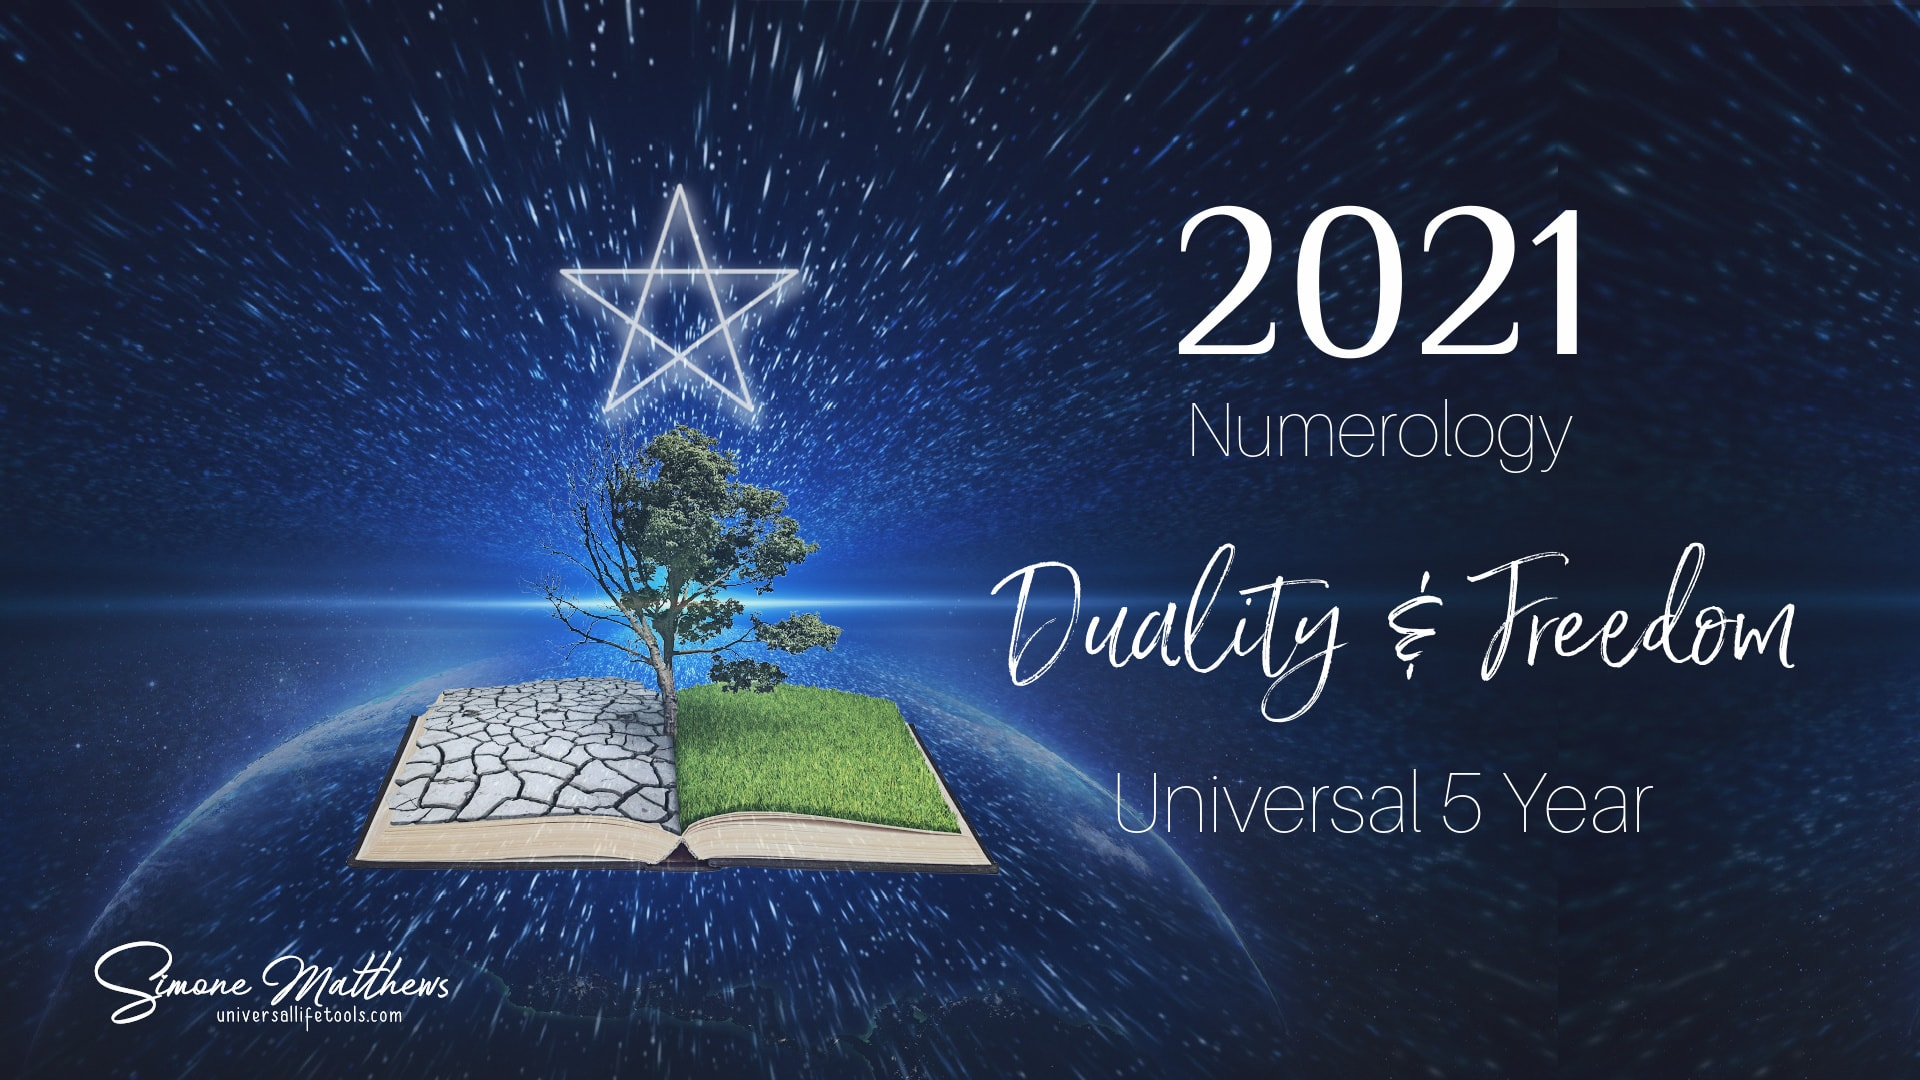 Numerology 2021 Universal 5 Year Meaning Simone Matthews nw2